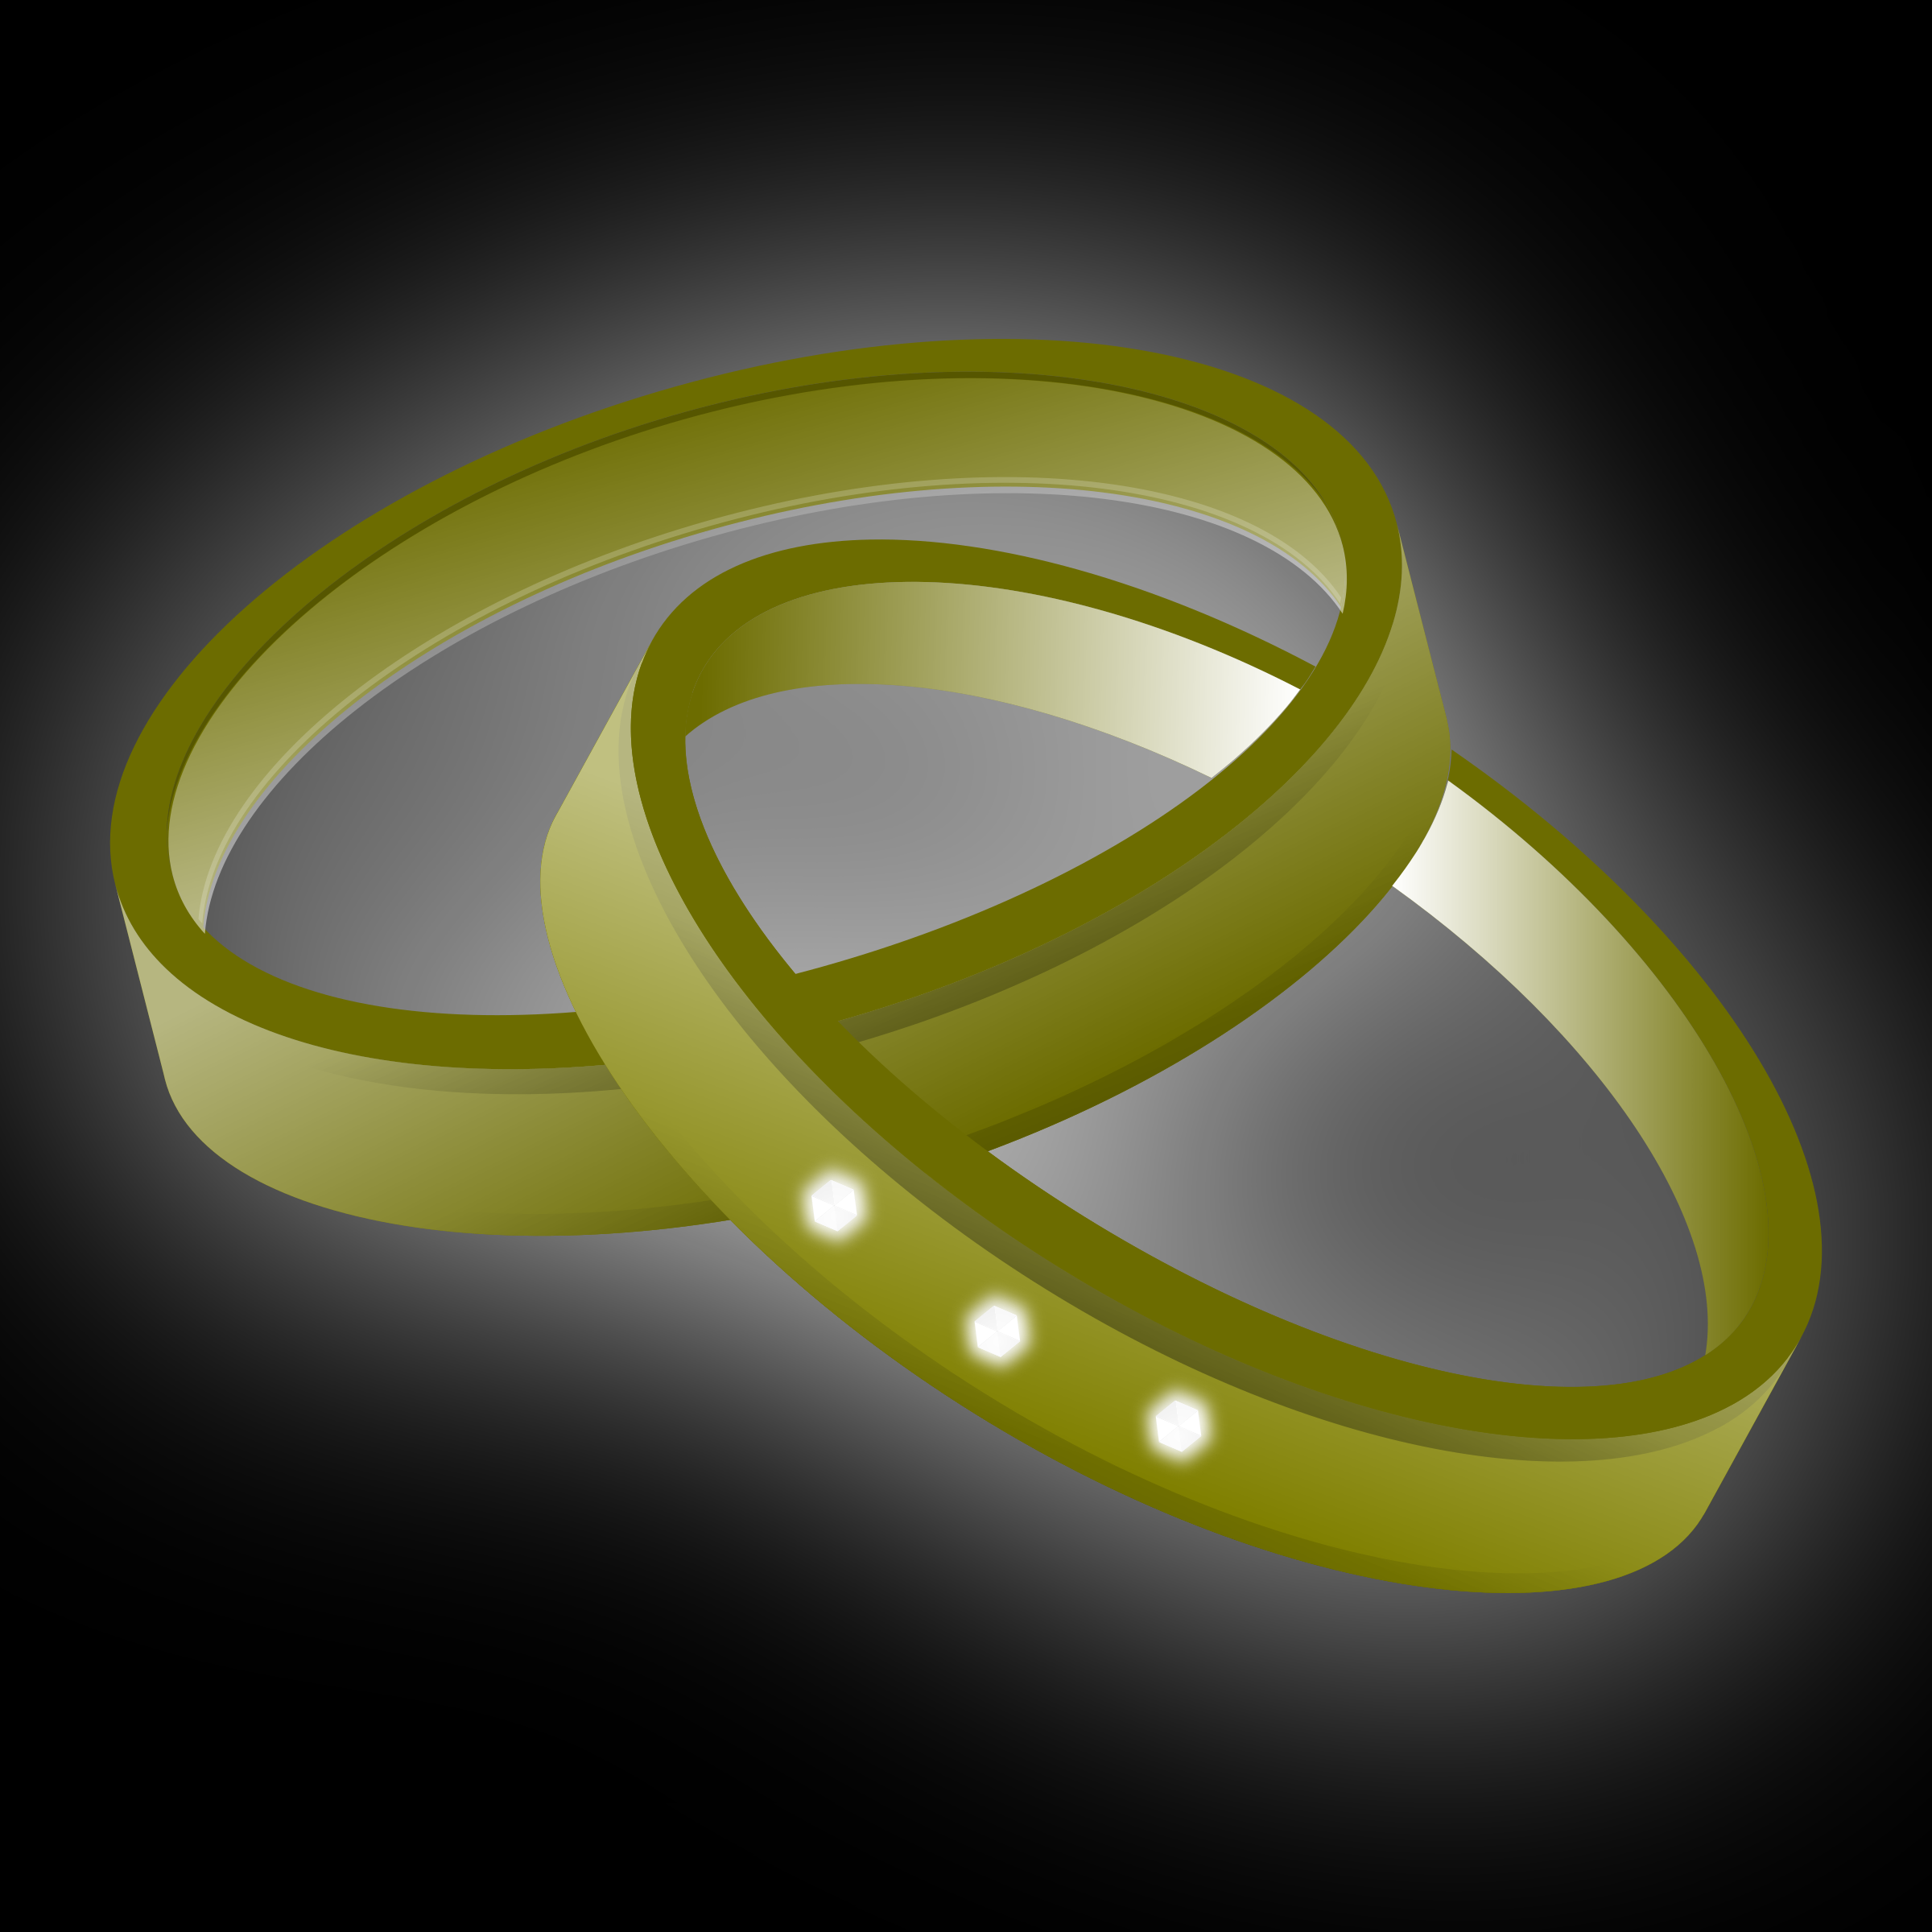 Wedding rings picture 2 by jazzfunman